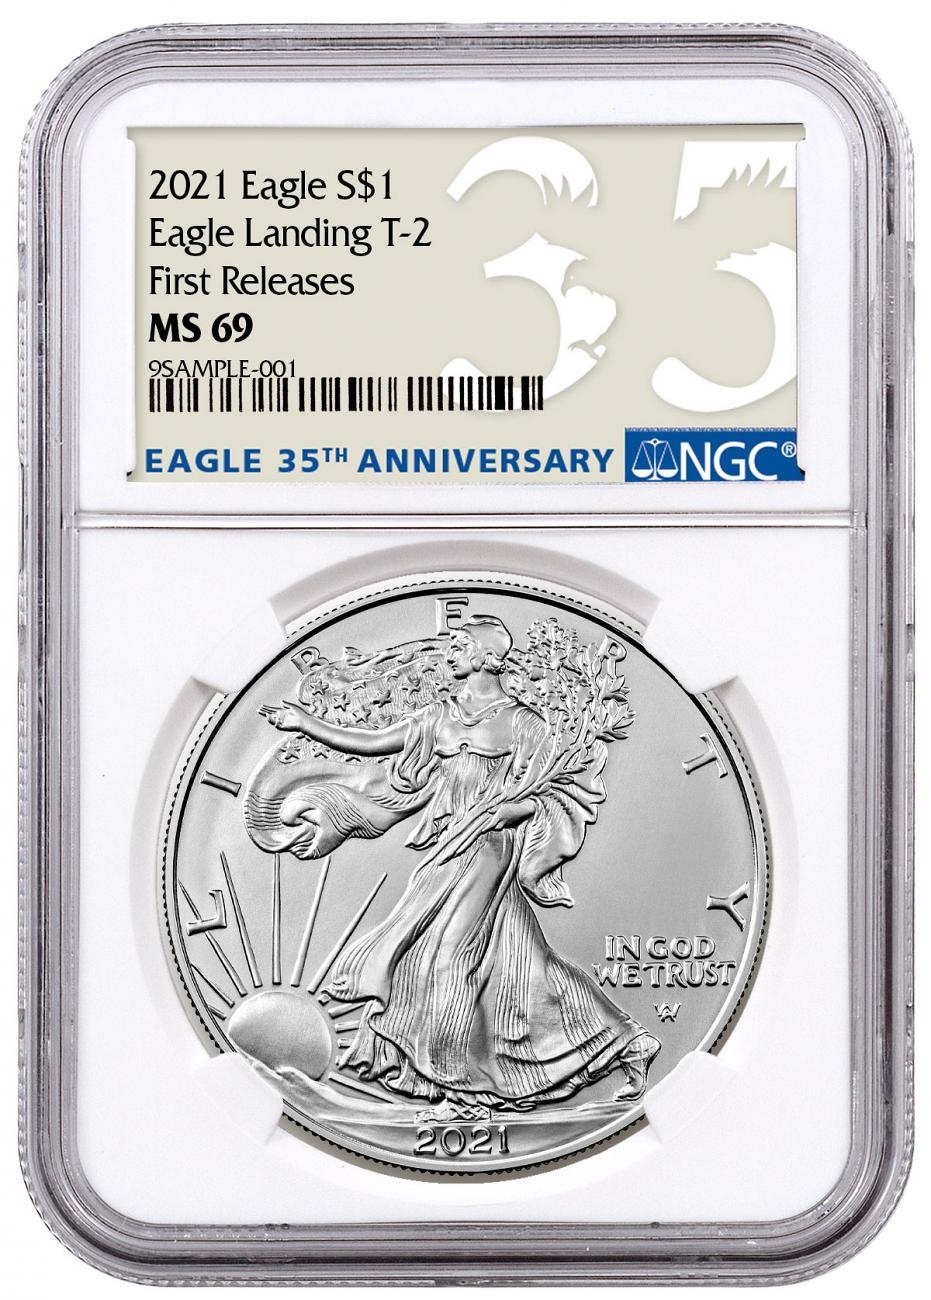 2021 American 1 oz Silver Eagle T-2 NGC MS69 FR 35th Anniversary Label